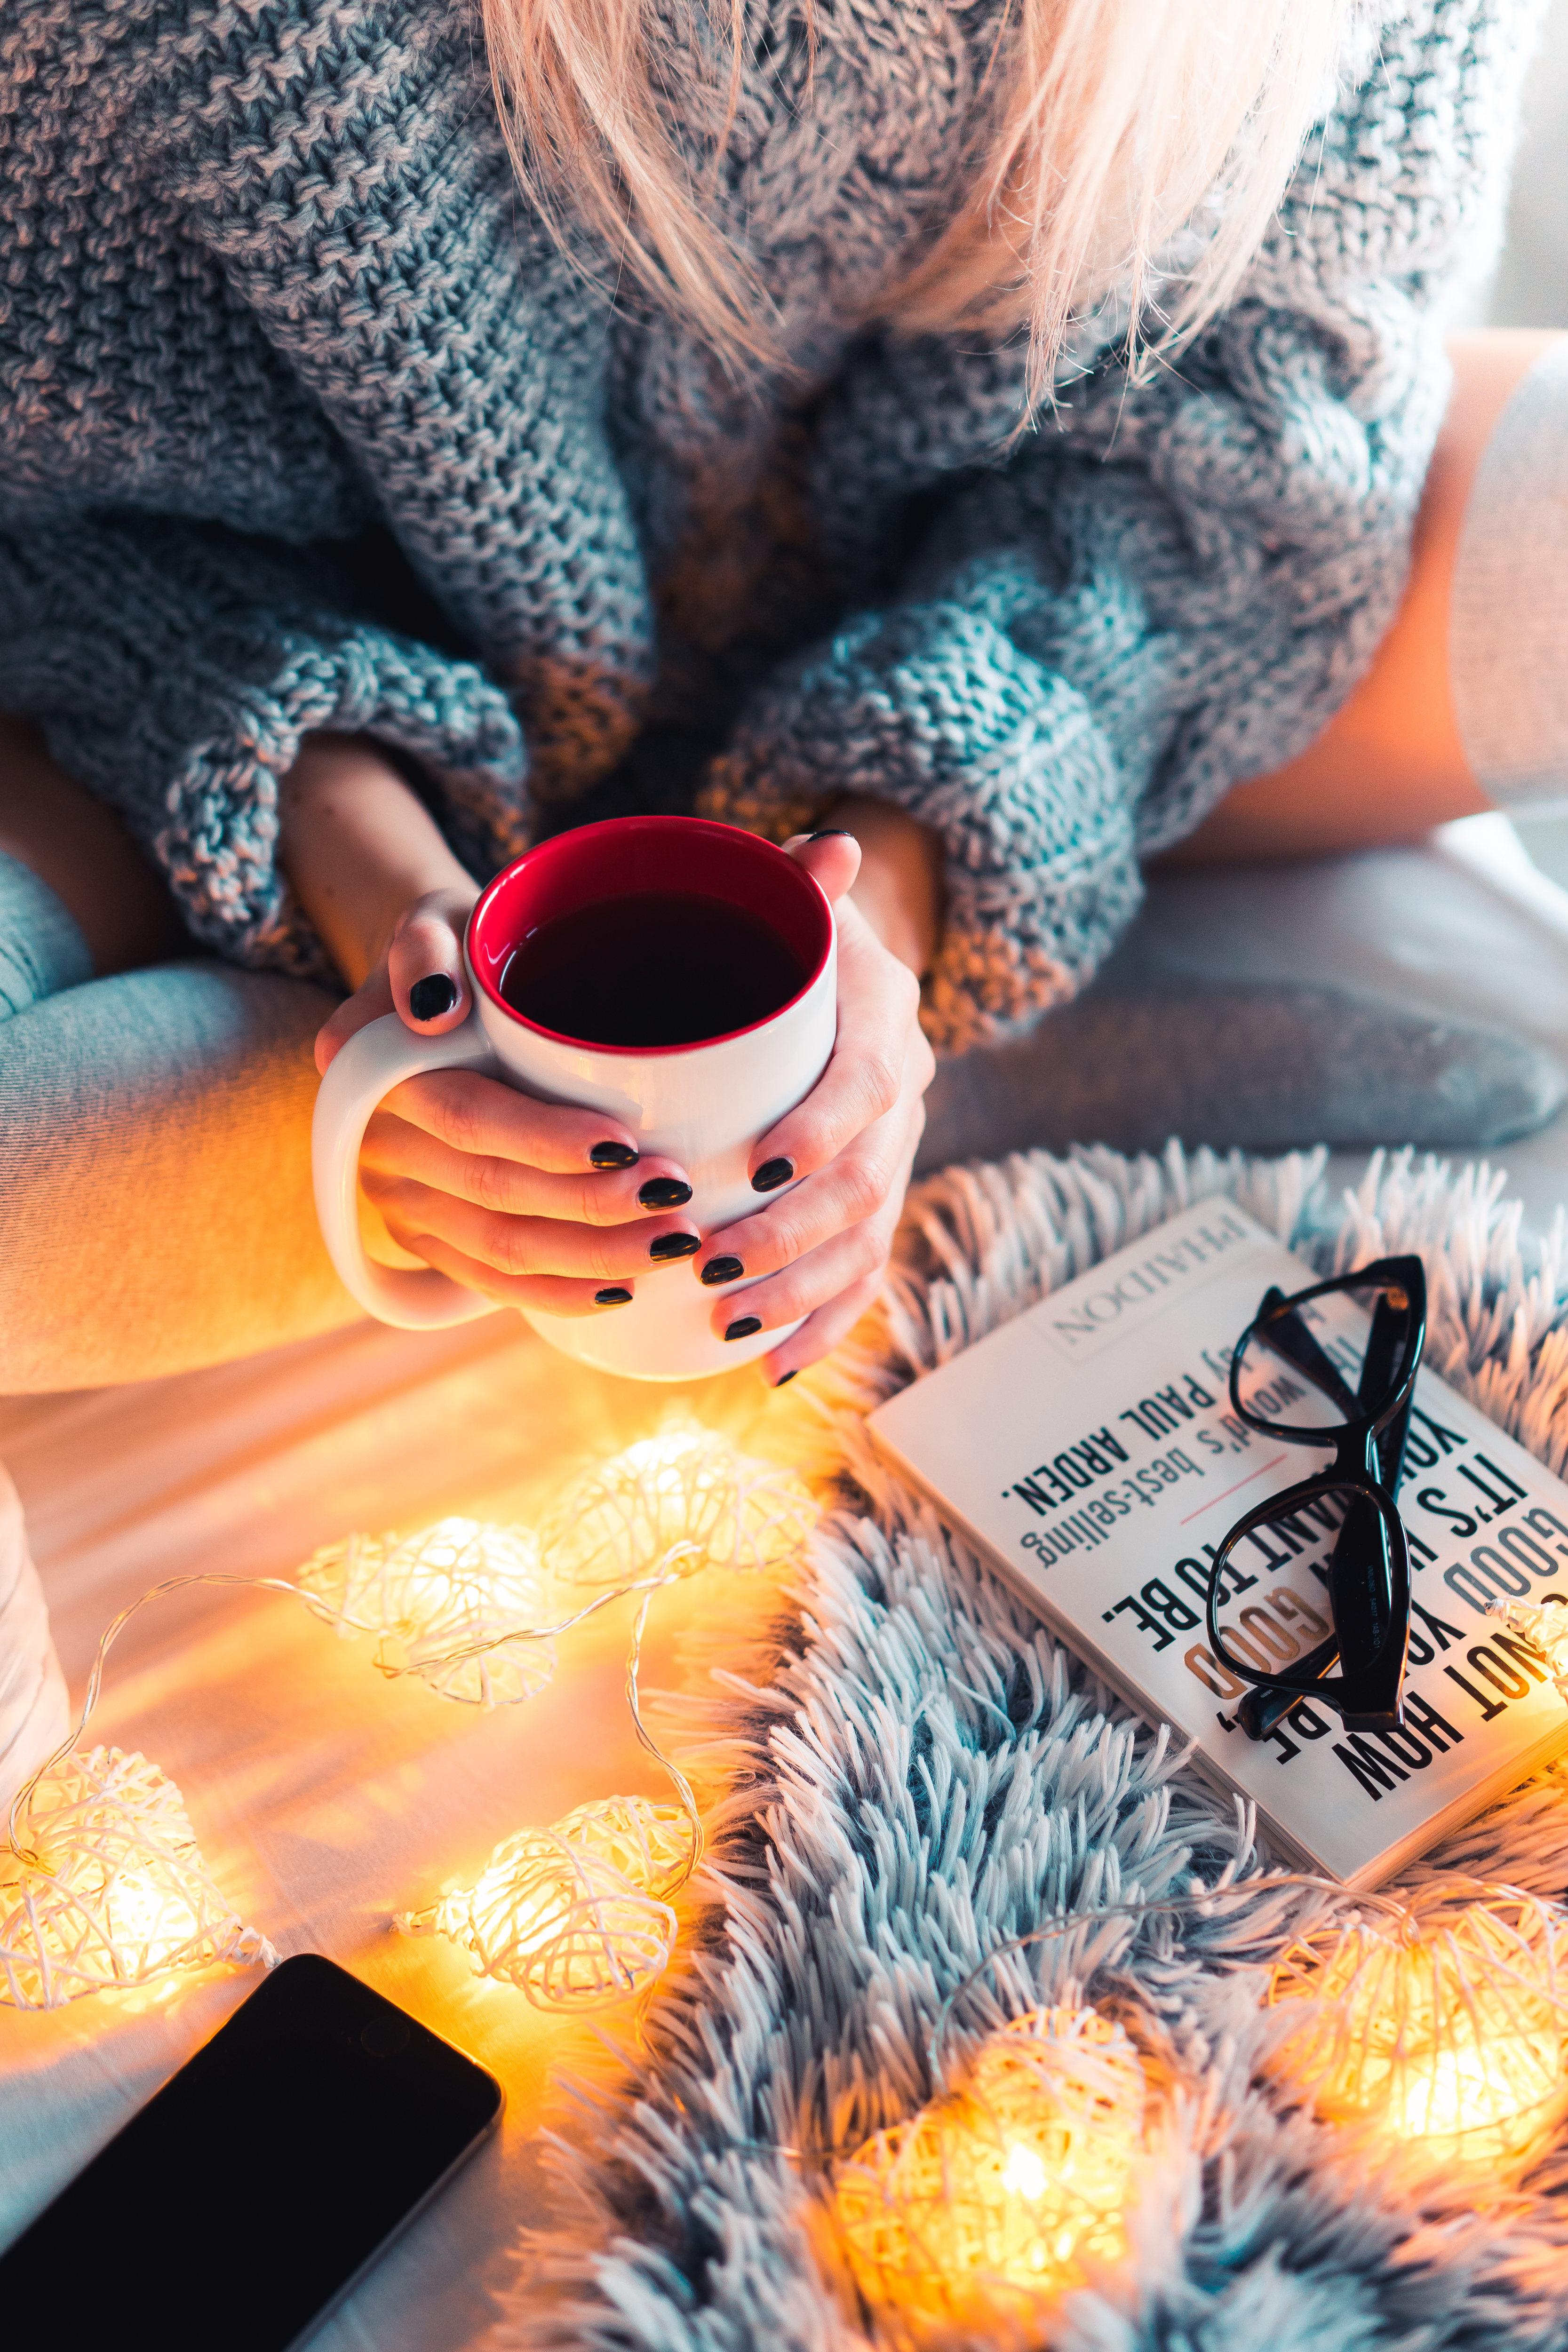 148900 download wallpaper Miscellanea, Coffee, Miscellaneous, Cup, Hands, Garland, Mood, Coziness, Comfort, Garlands, Mug screensavers and pictures for free